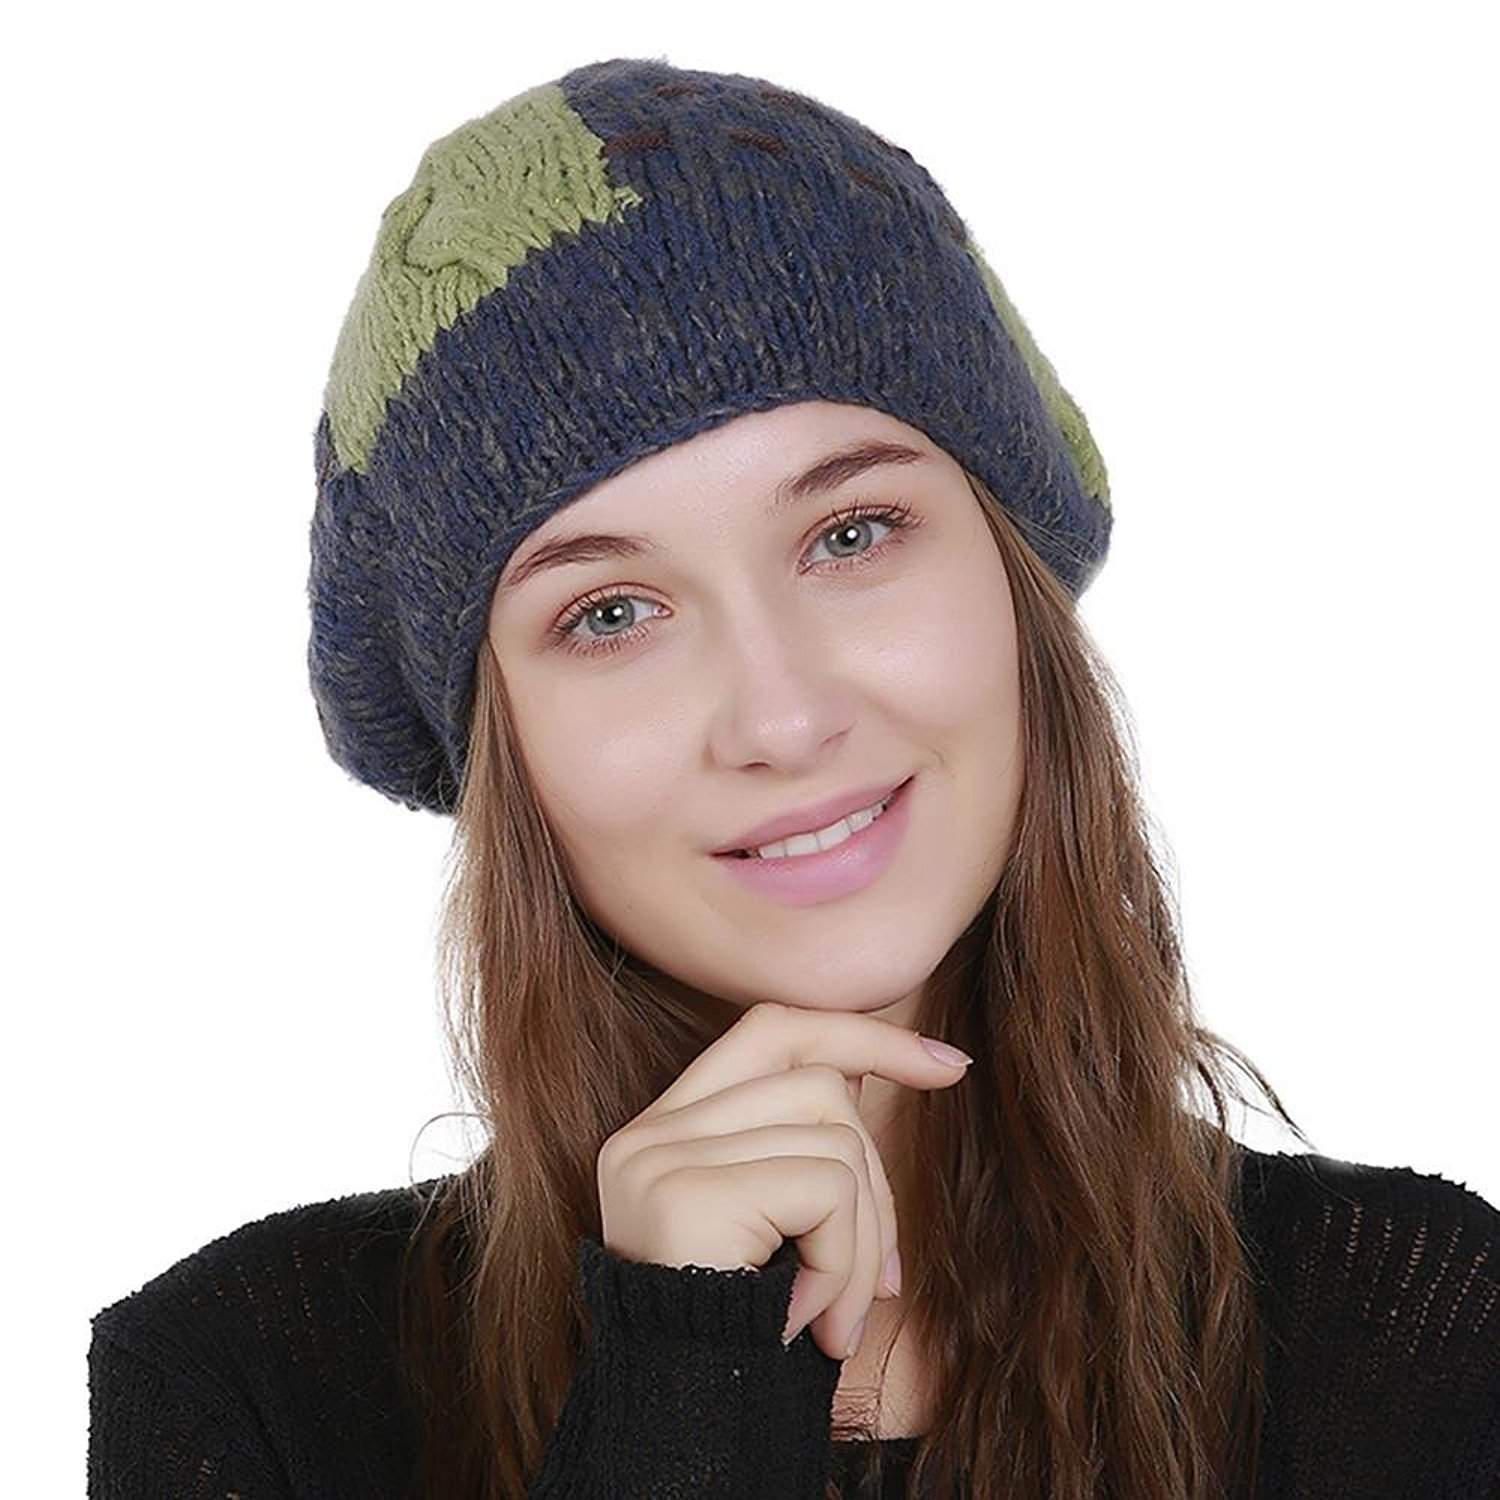 e2b7bd7073f Get Quotations · Fheaven Women s Winter Oversized Chunky Soft Oversized  Cable Crochet Knit Slouchy Pom Pom Beanie